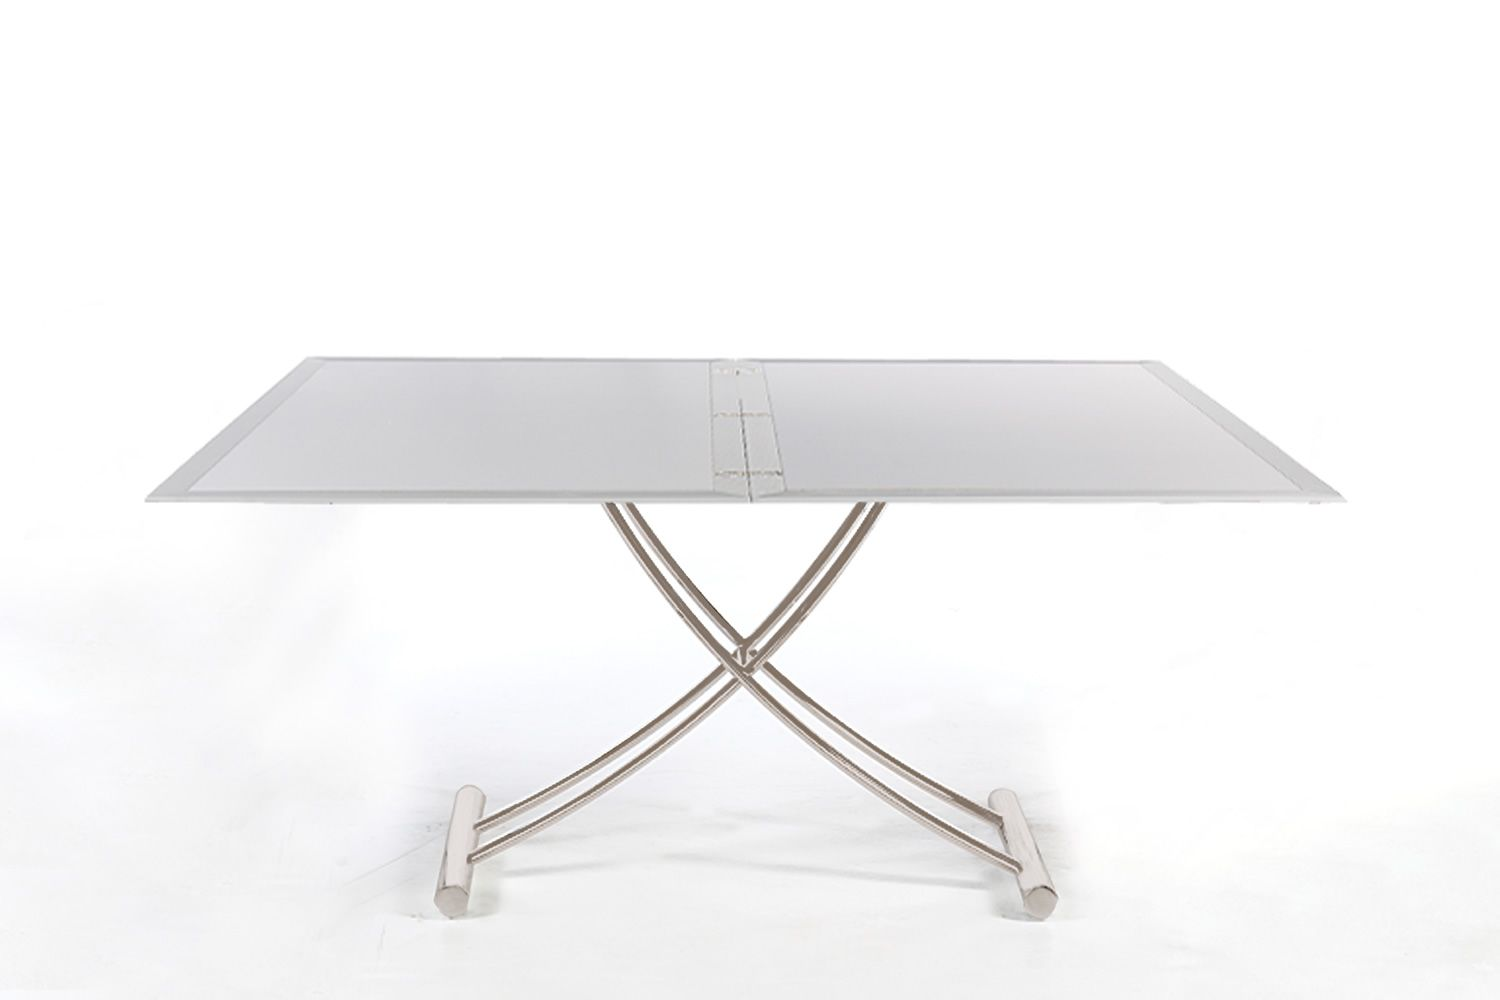 hires up down table up down de colico design 16 Frais Table De Salle A Manger Design Avec Rallonge Kgit4